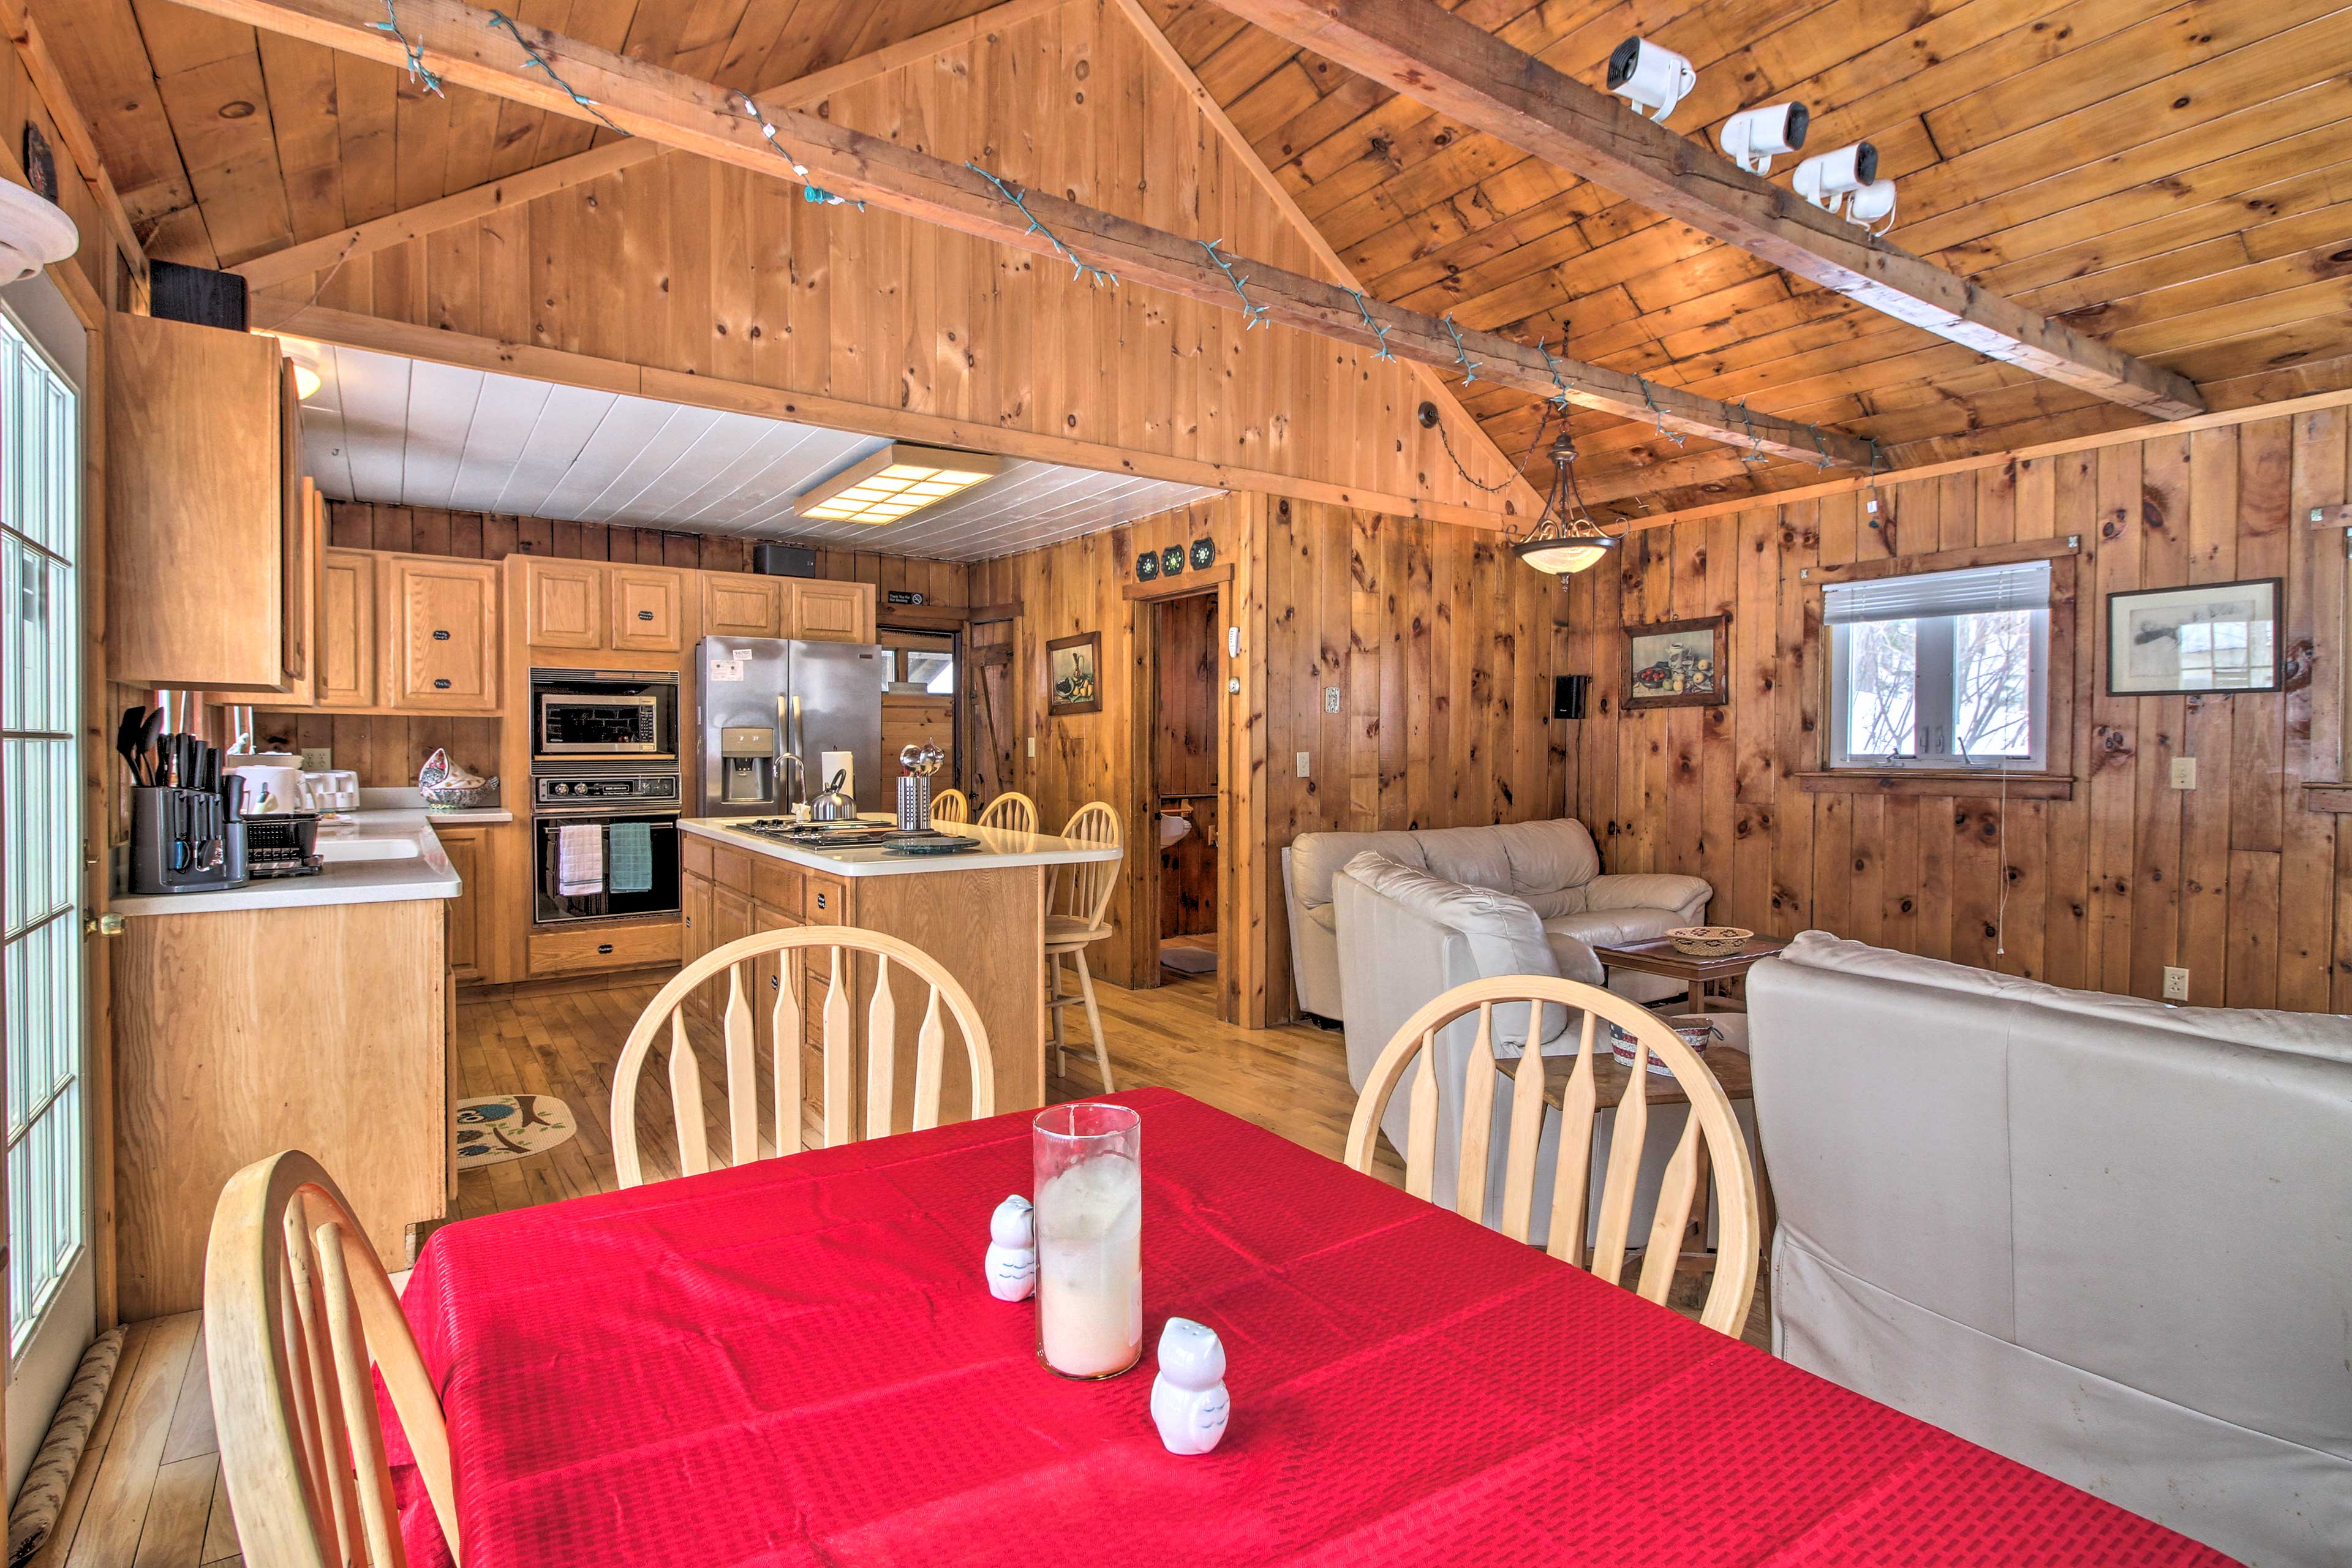 Book a trip to this 4-bedroom, 3-bathroom vacation rental home in Ludlow!